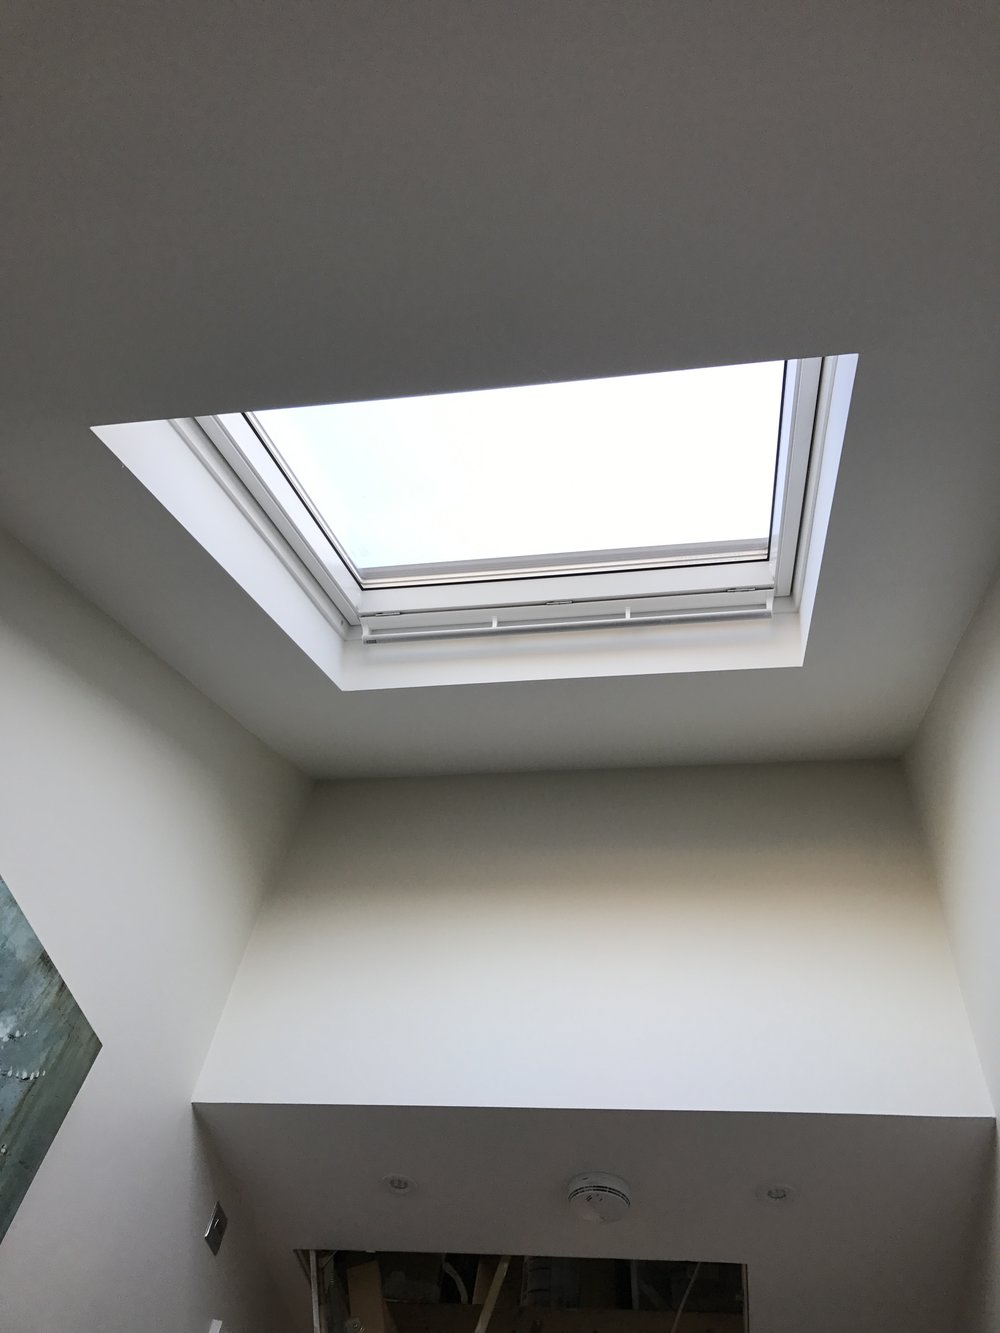 ceiling window